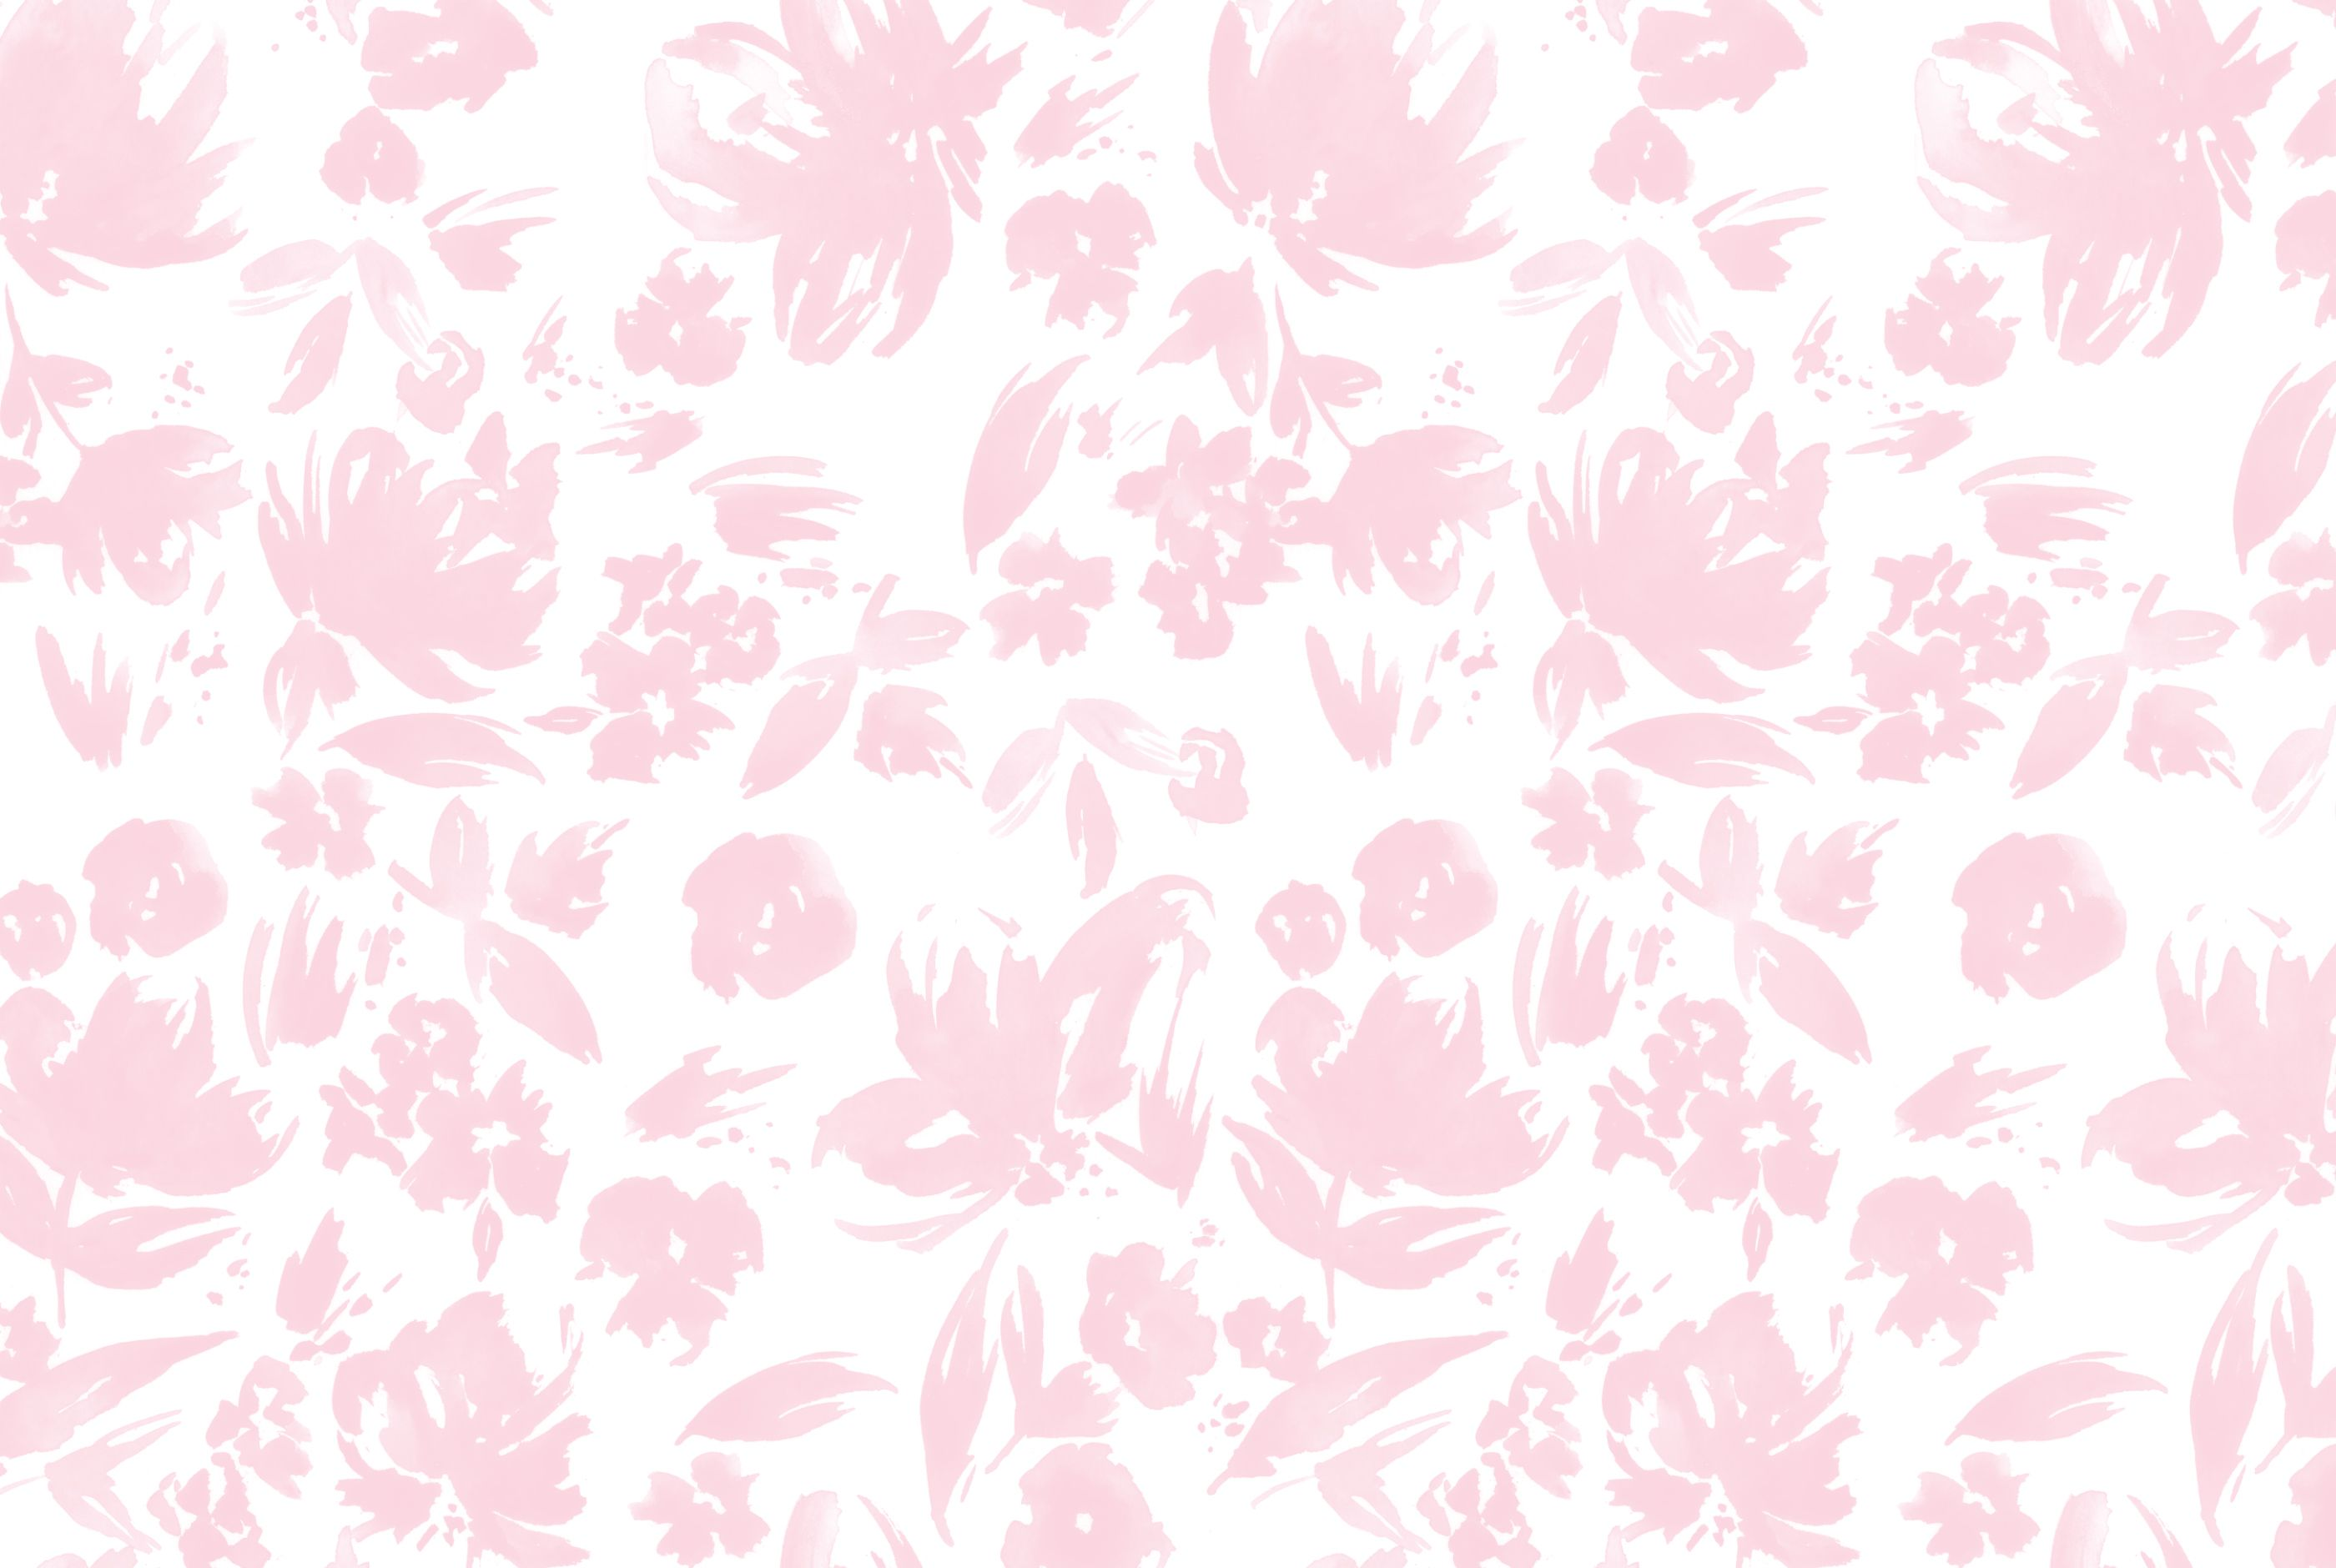 think all things pink and reshen up your mobile or desktop backgrounds with these digital free